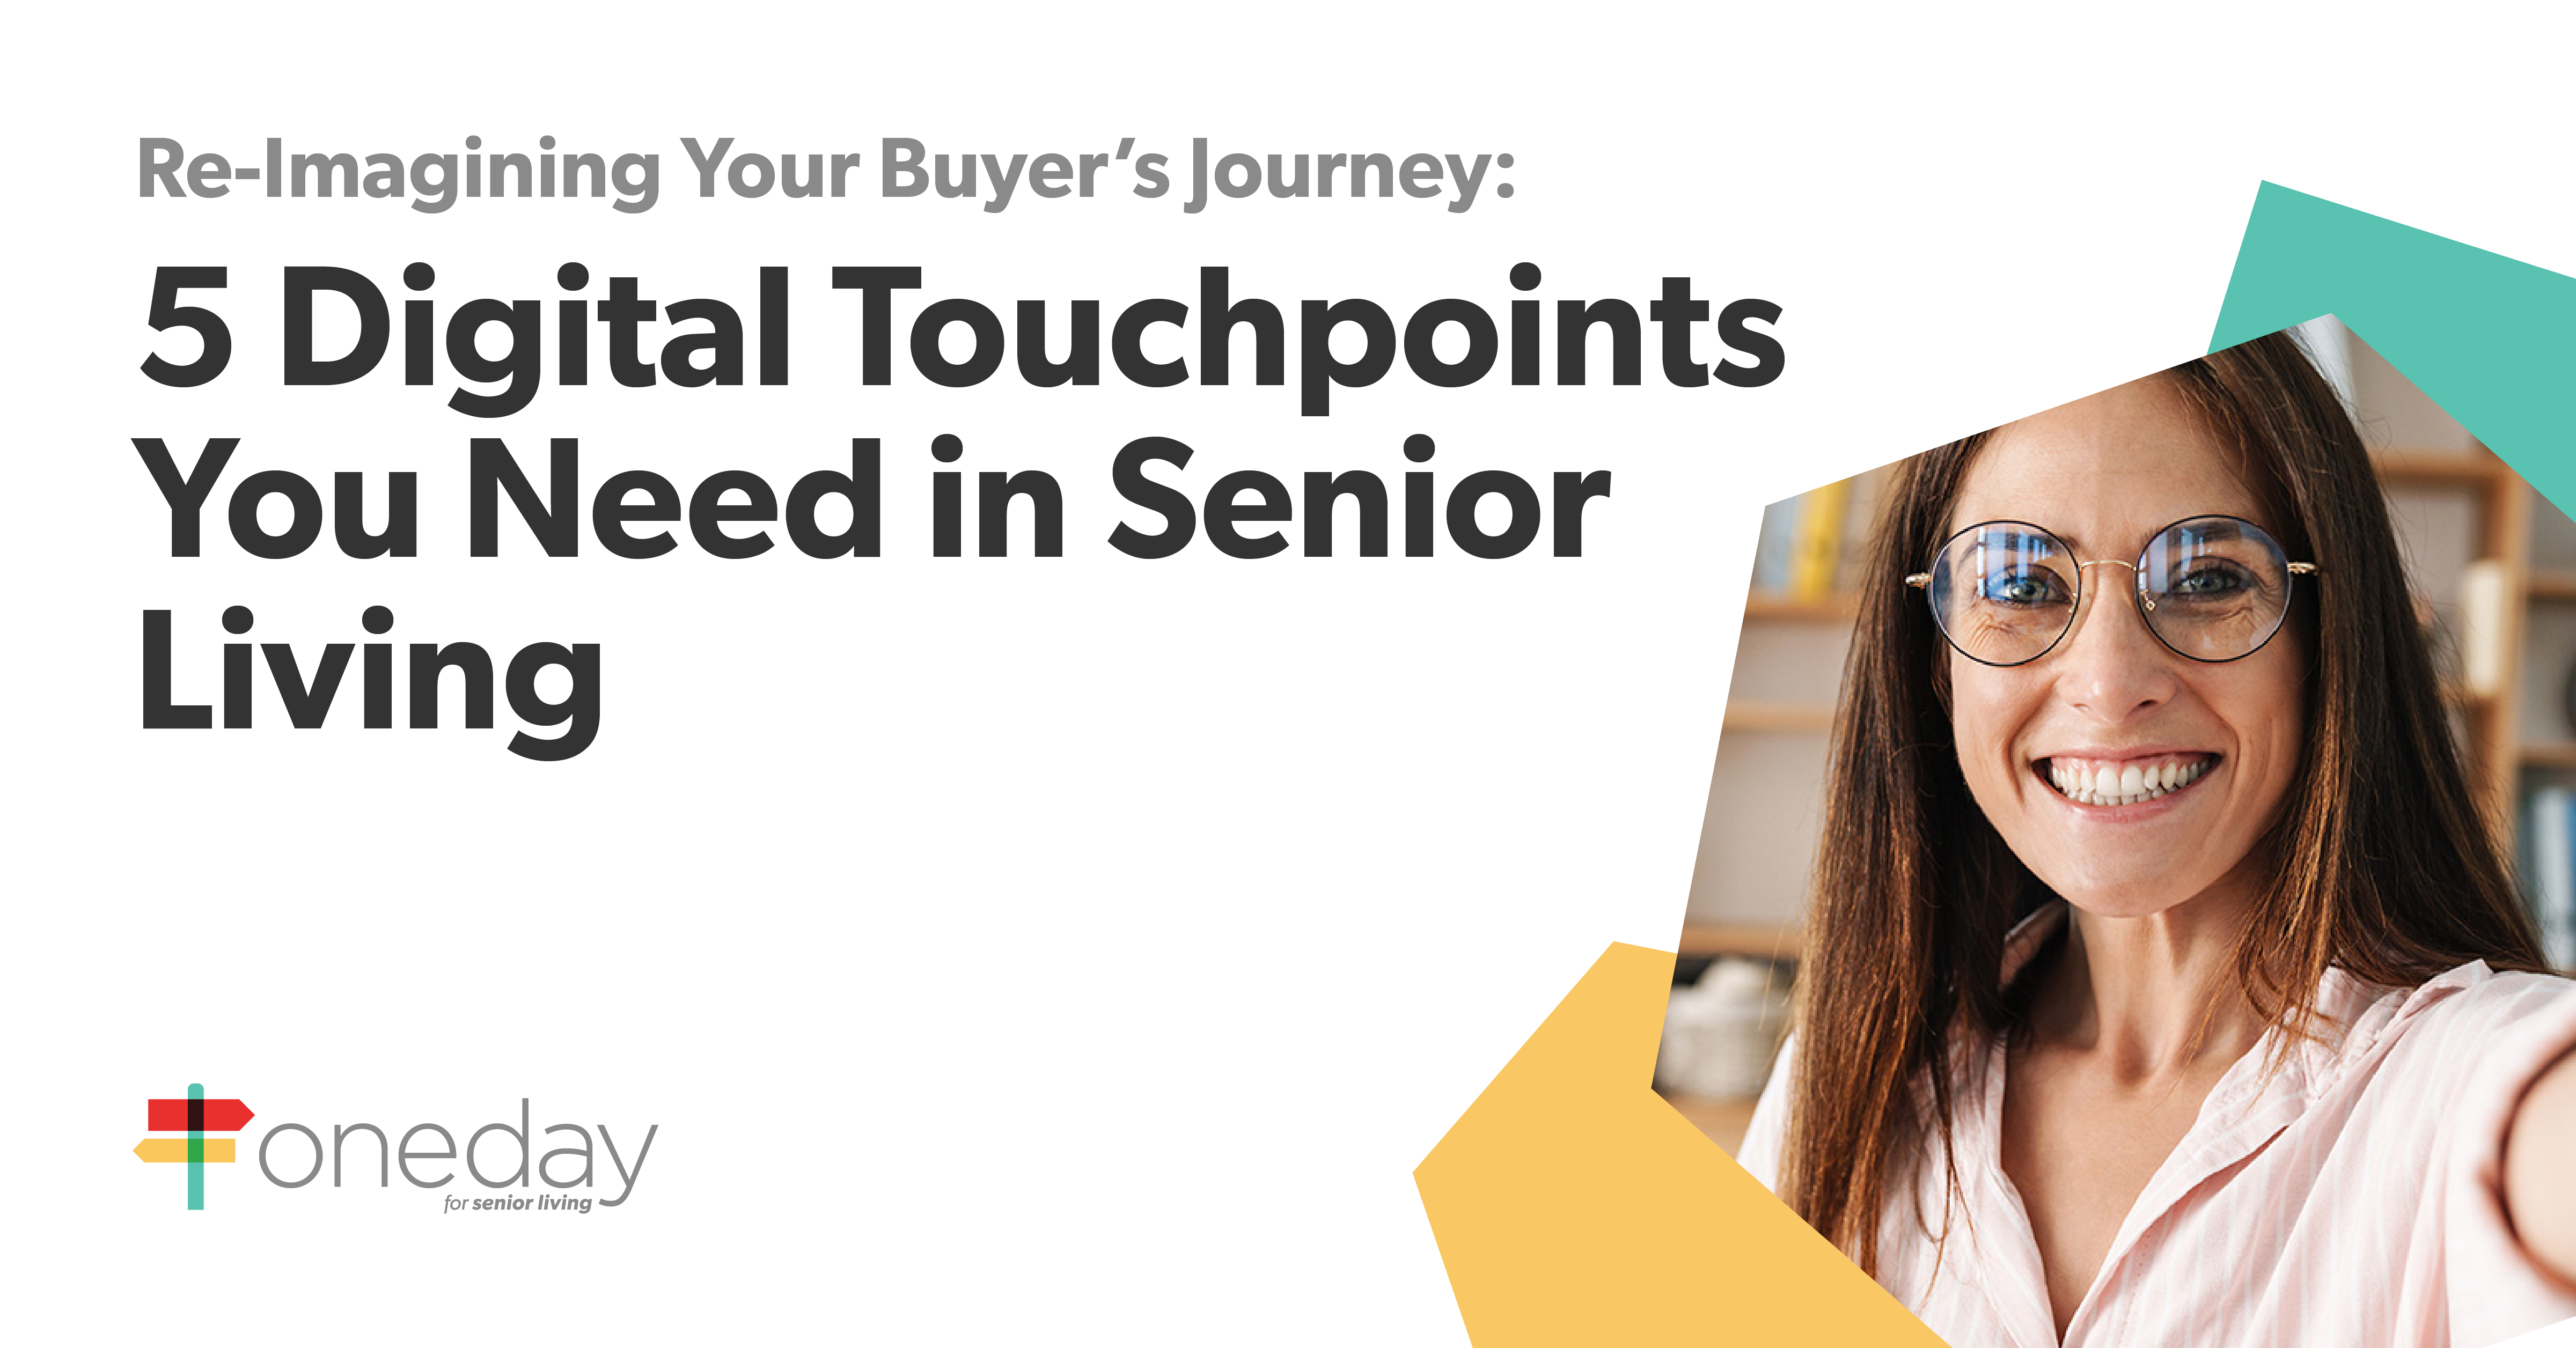 OneDay's latest webinar provides insights and tips on using digital tools and tactics across every step of the buyer's journey in senior living.